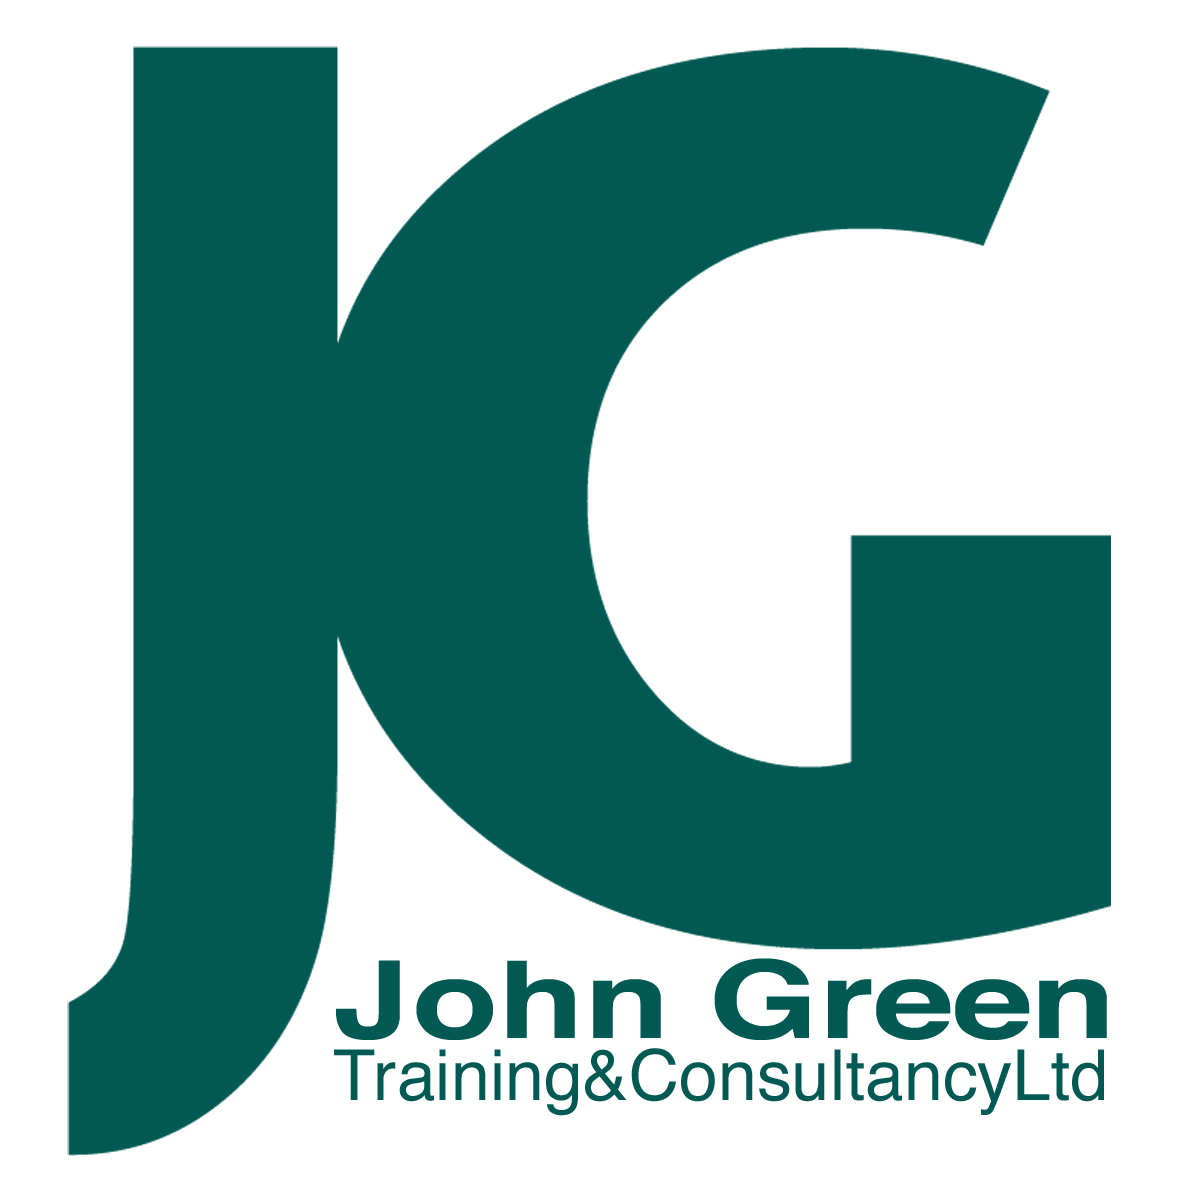 John Green Health & Safety Training & Consultancy